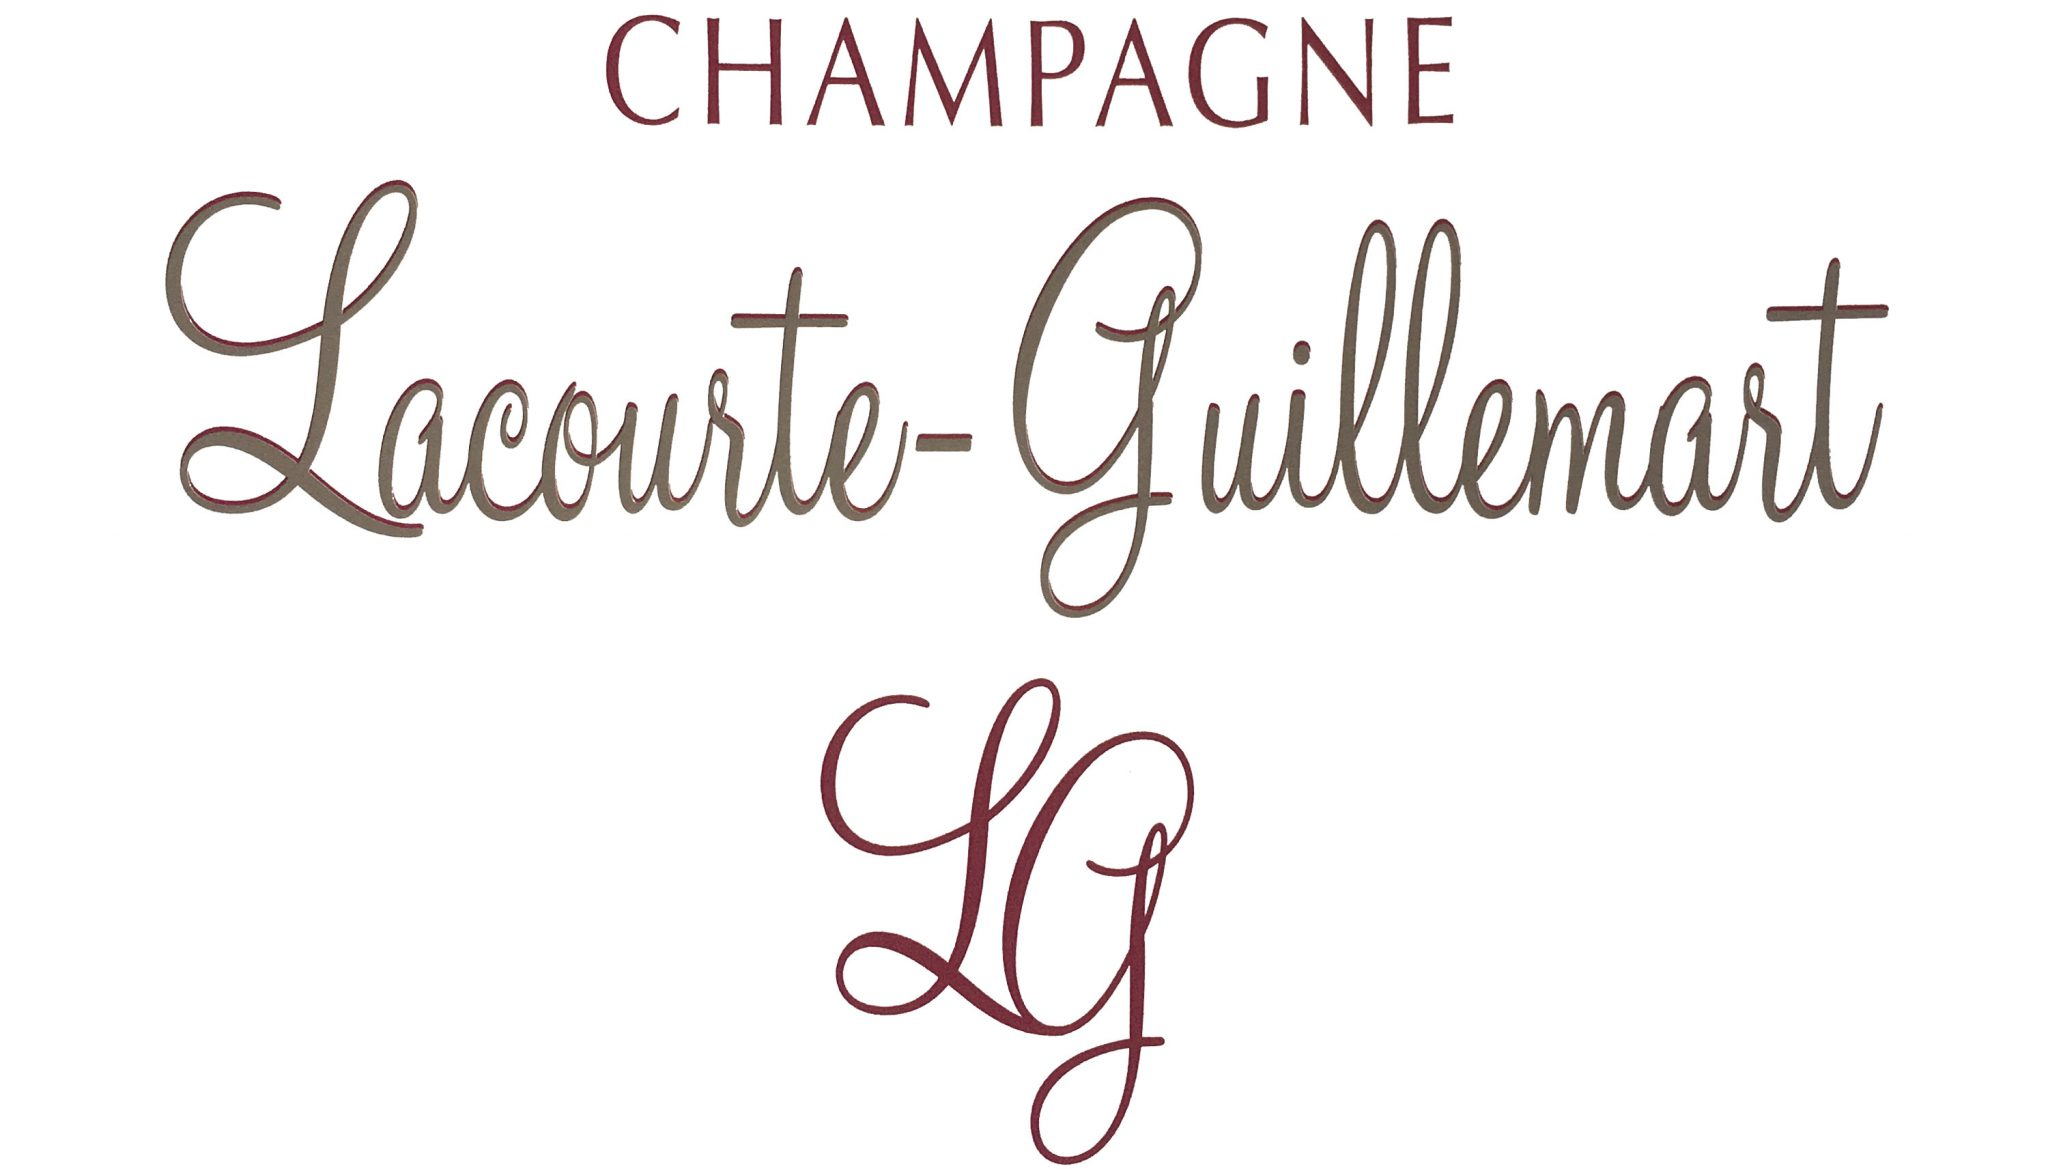 Champagne Lacourte-Guillemart